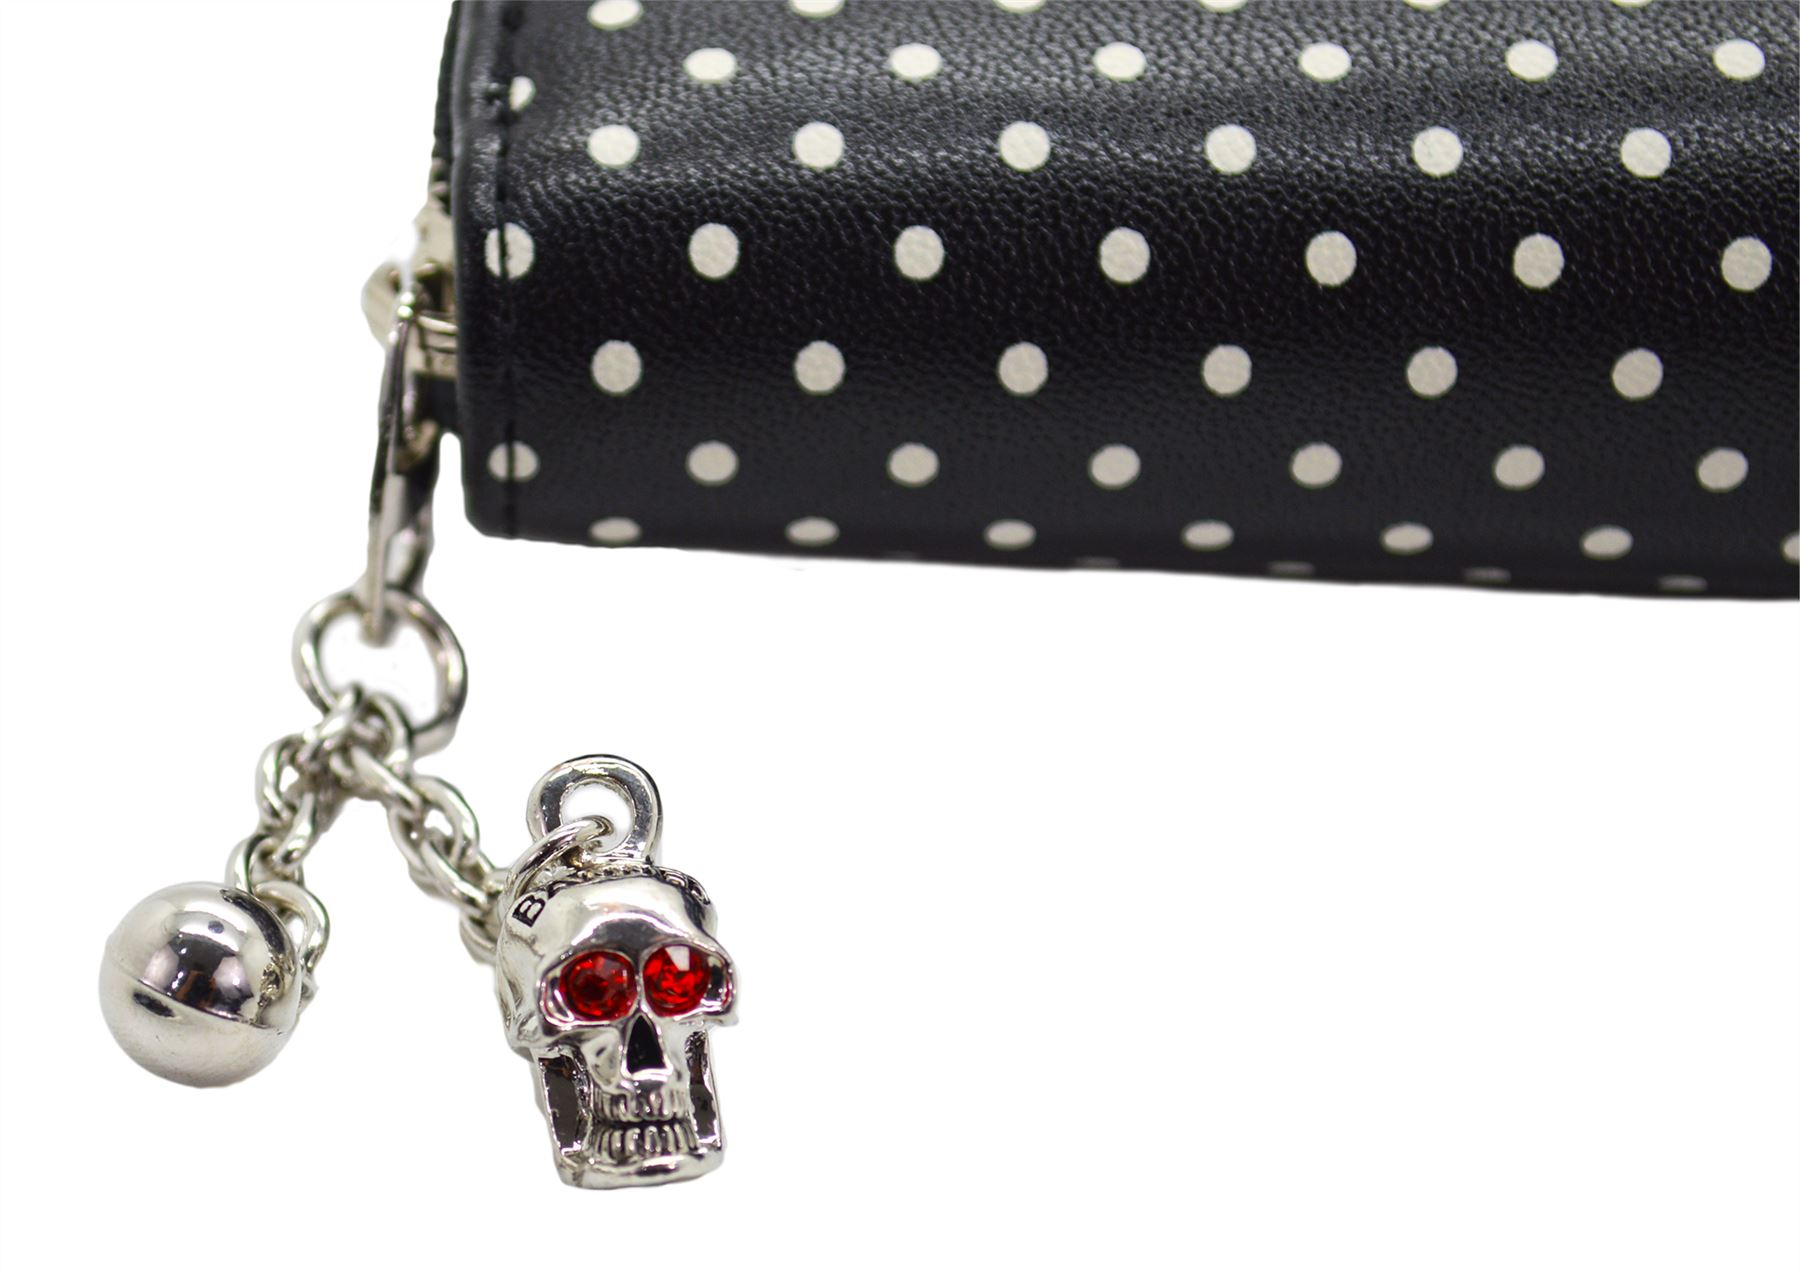 Banned Dia De Muertos Day of the Dead Alternative Purse